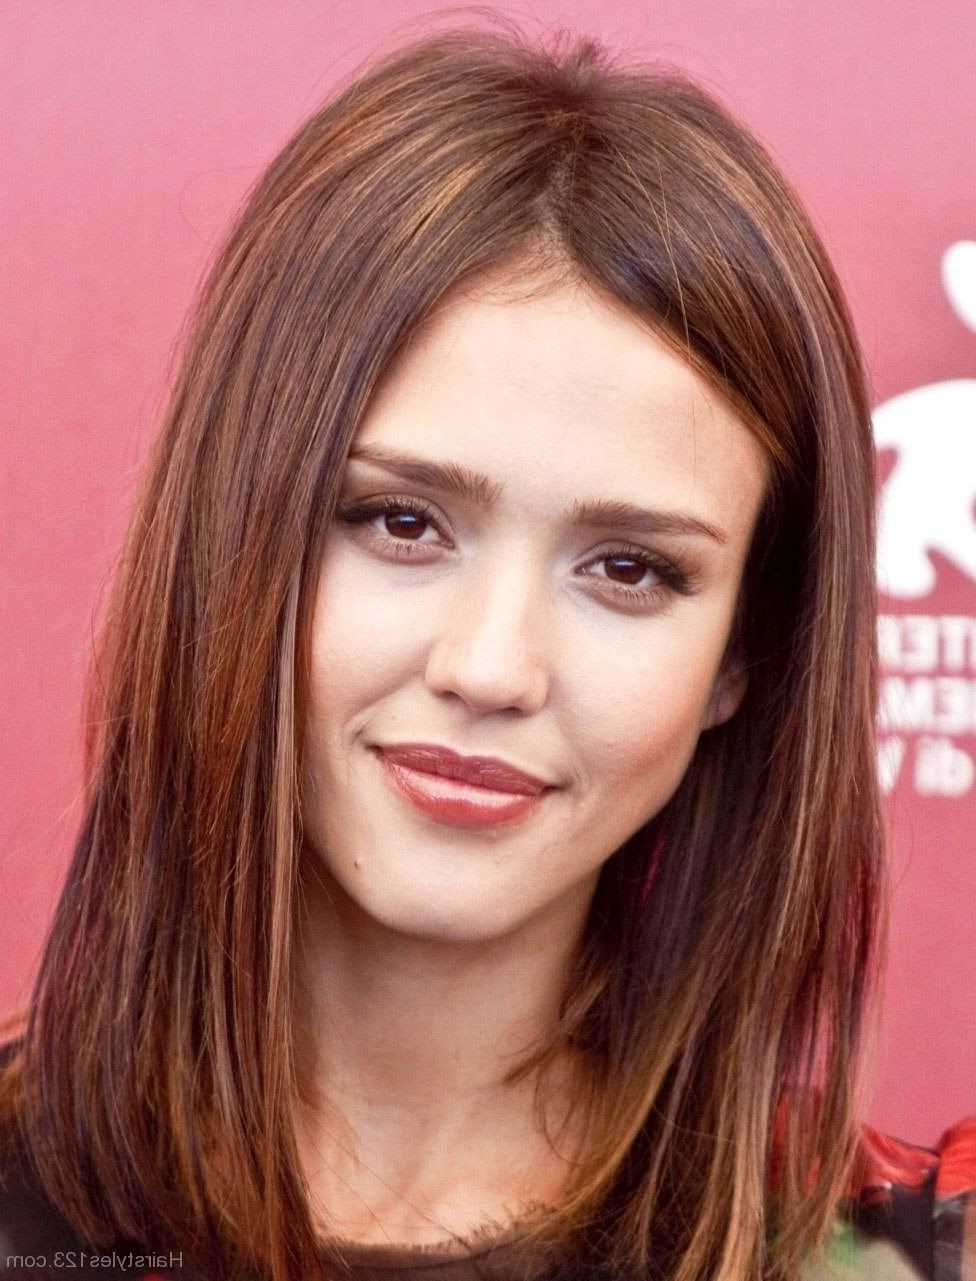 Hairstyles Library Regarding Widely Used Jessica Alba Medium Haircuts (View 9 of 20)